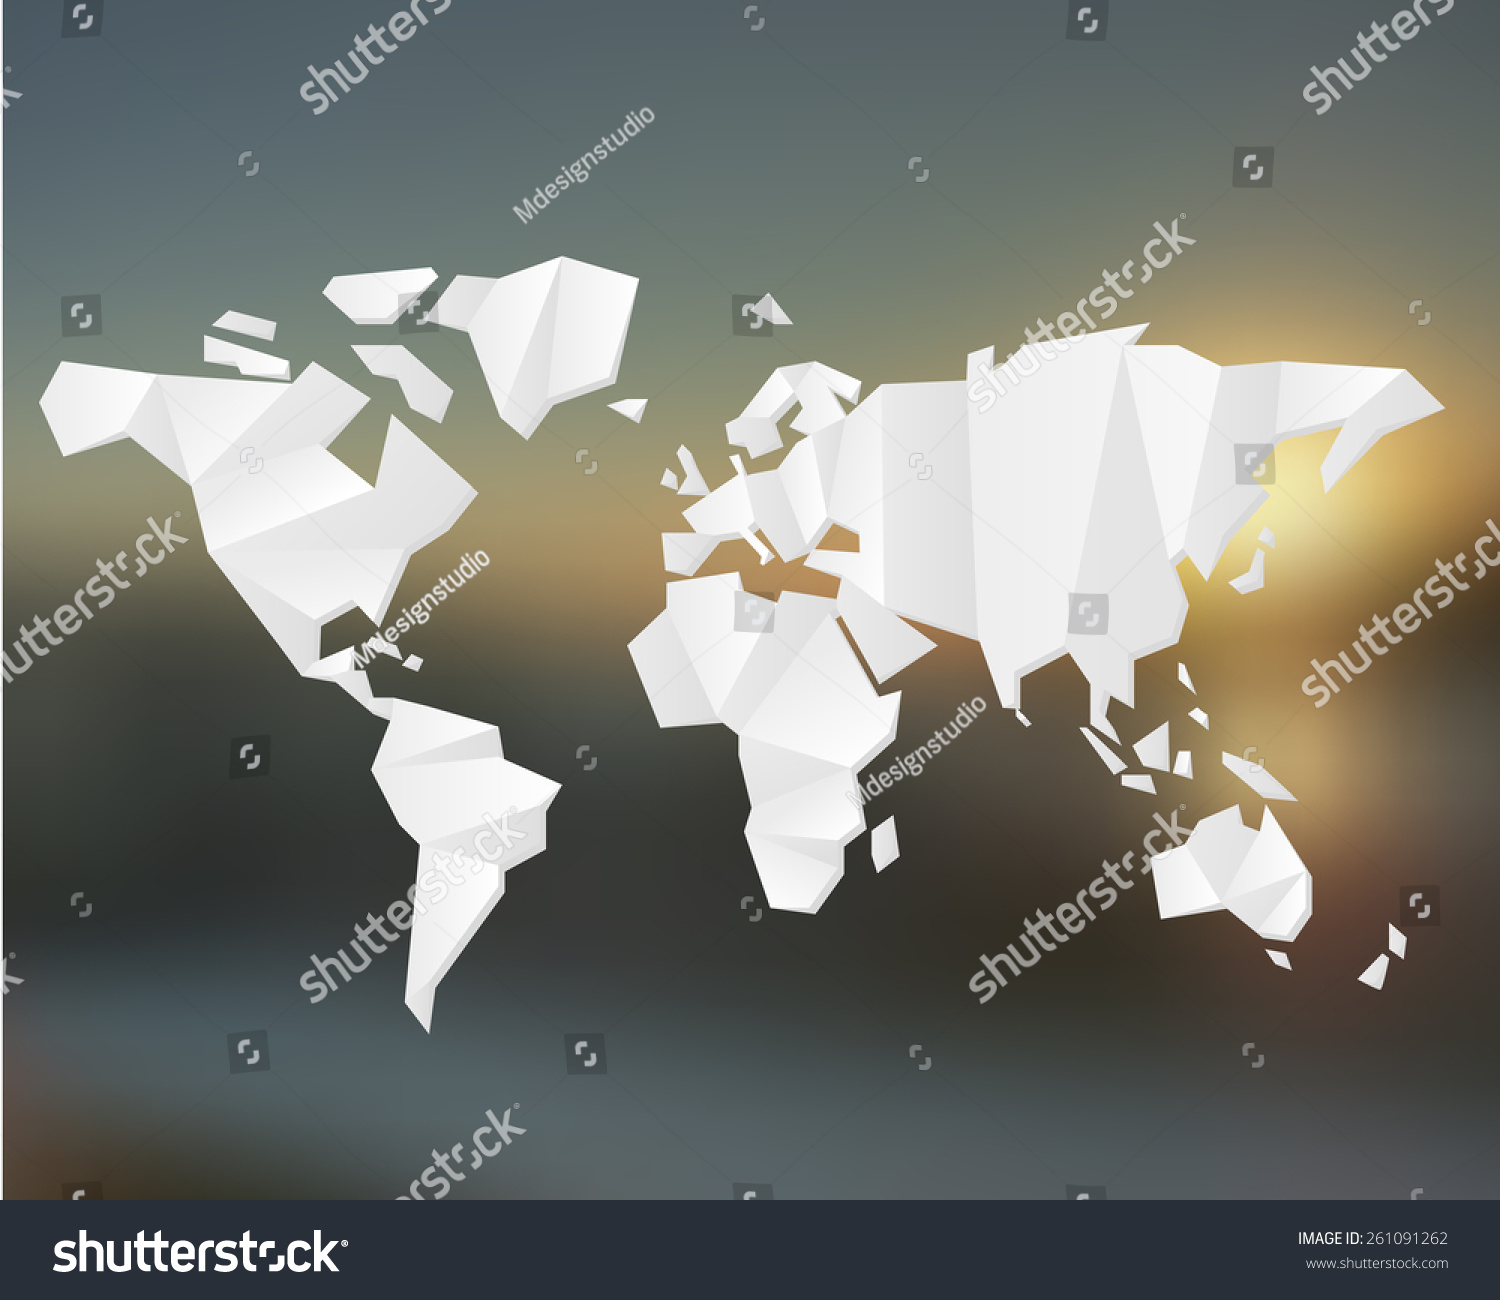 White origami world map world map vectores en stock 261091262 white origami world map world map concept gumiabroncs Choice Image